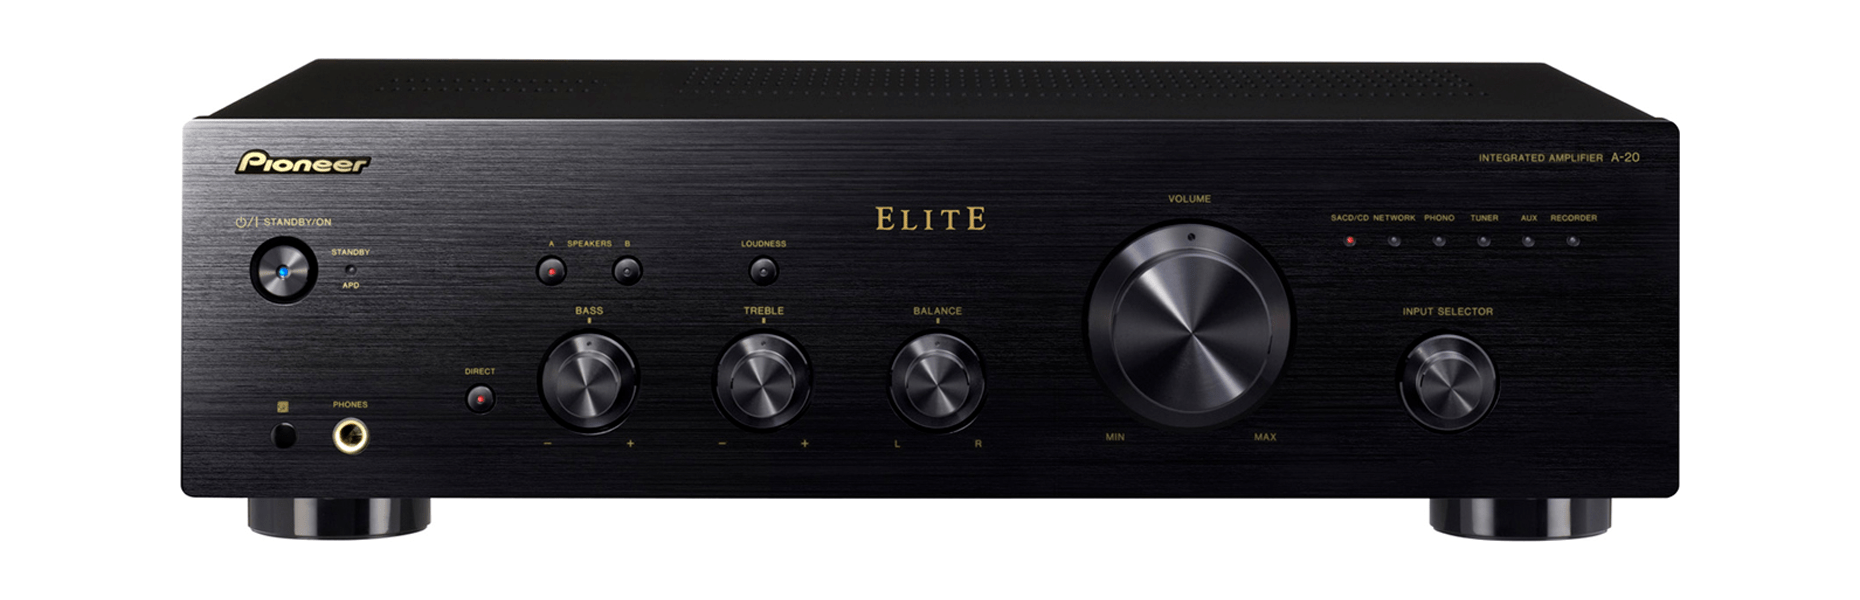 hight resolution of pioneer elite a 20 direct energy design integrated amplifier accessories4less